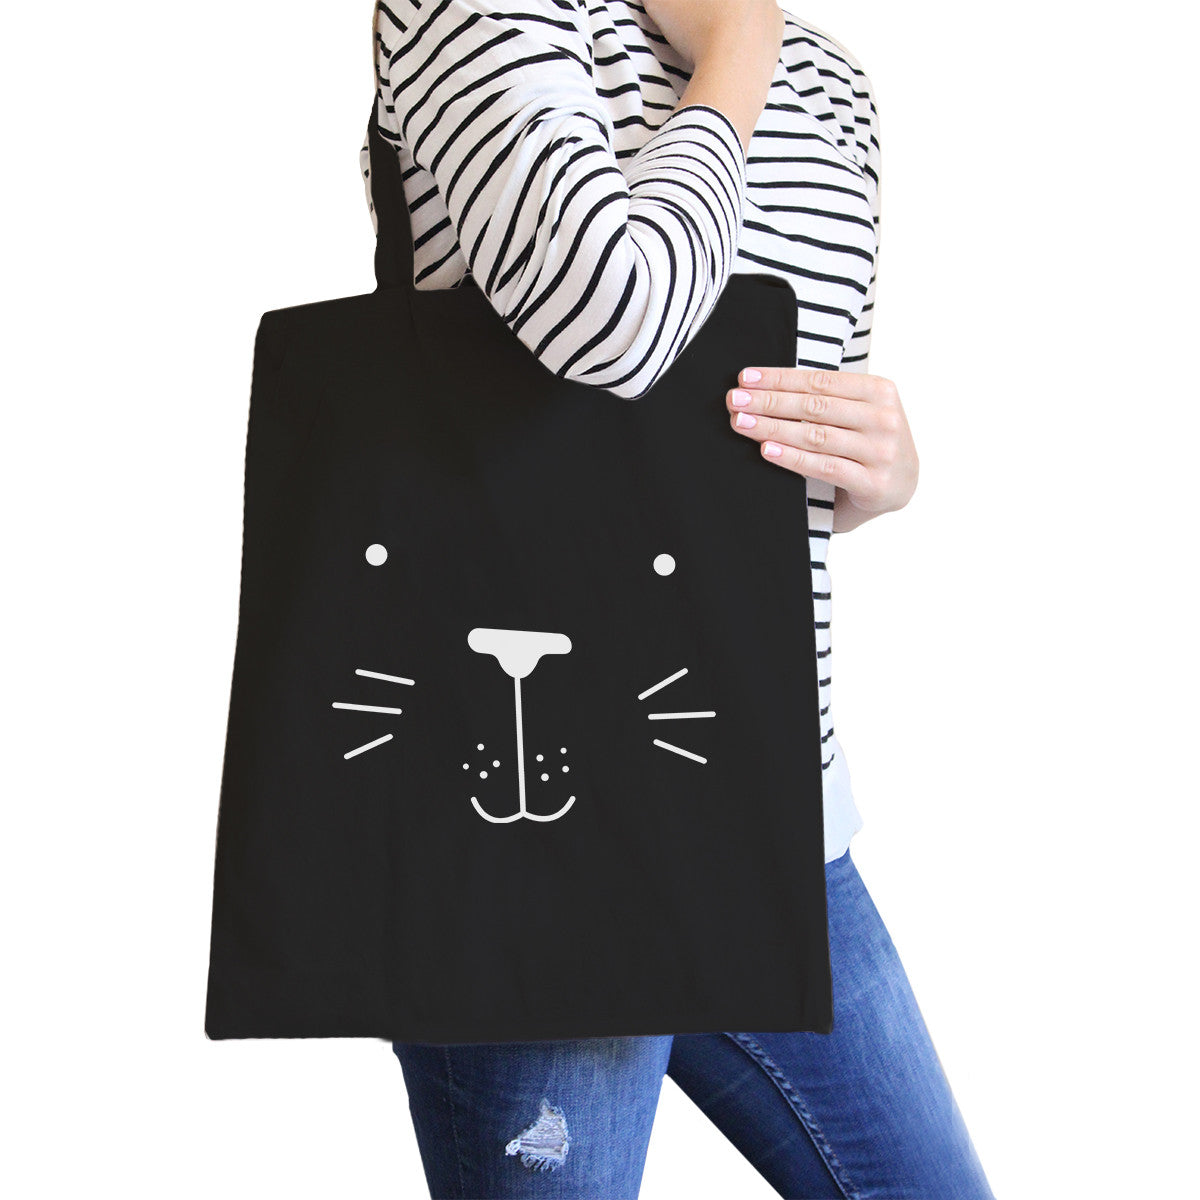 0af1e0878f Seal Cute Face Black Canvas Bag Back To School Gift Tote Bags - 365 ...